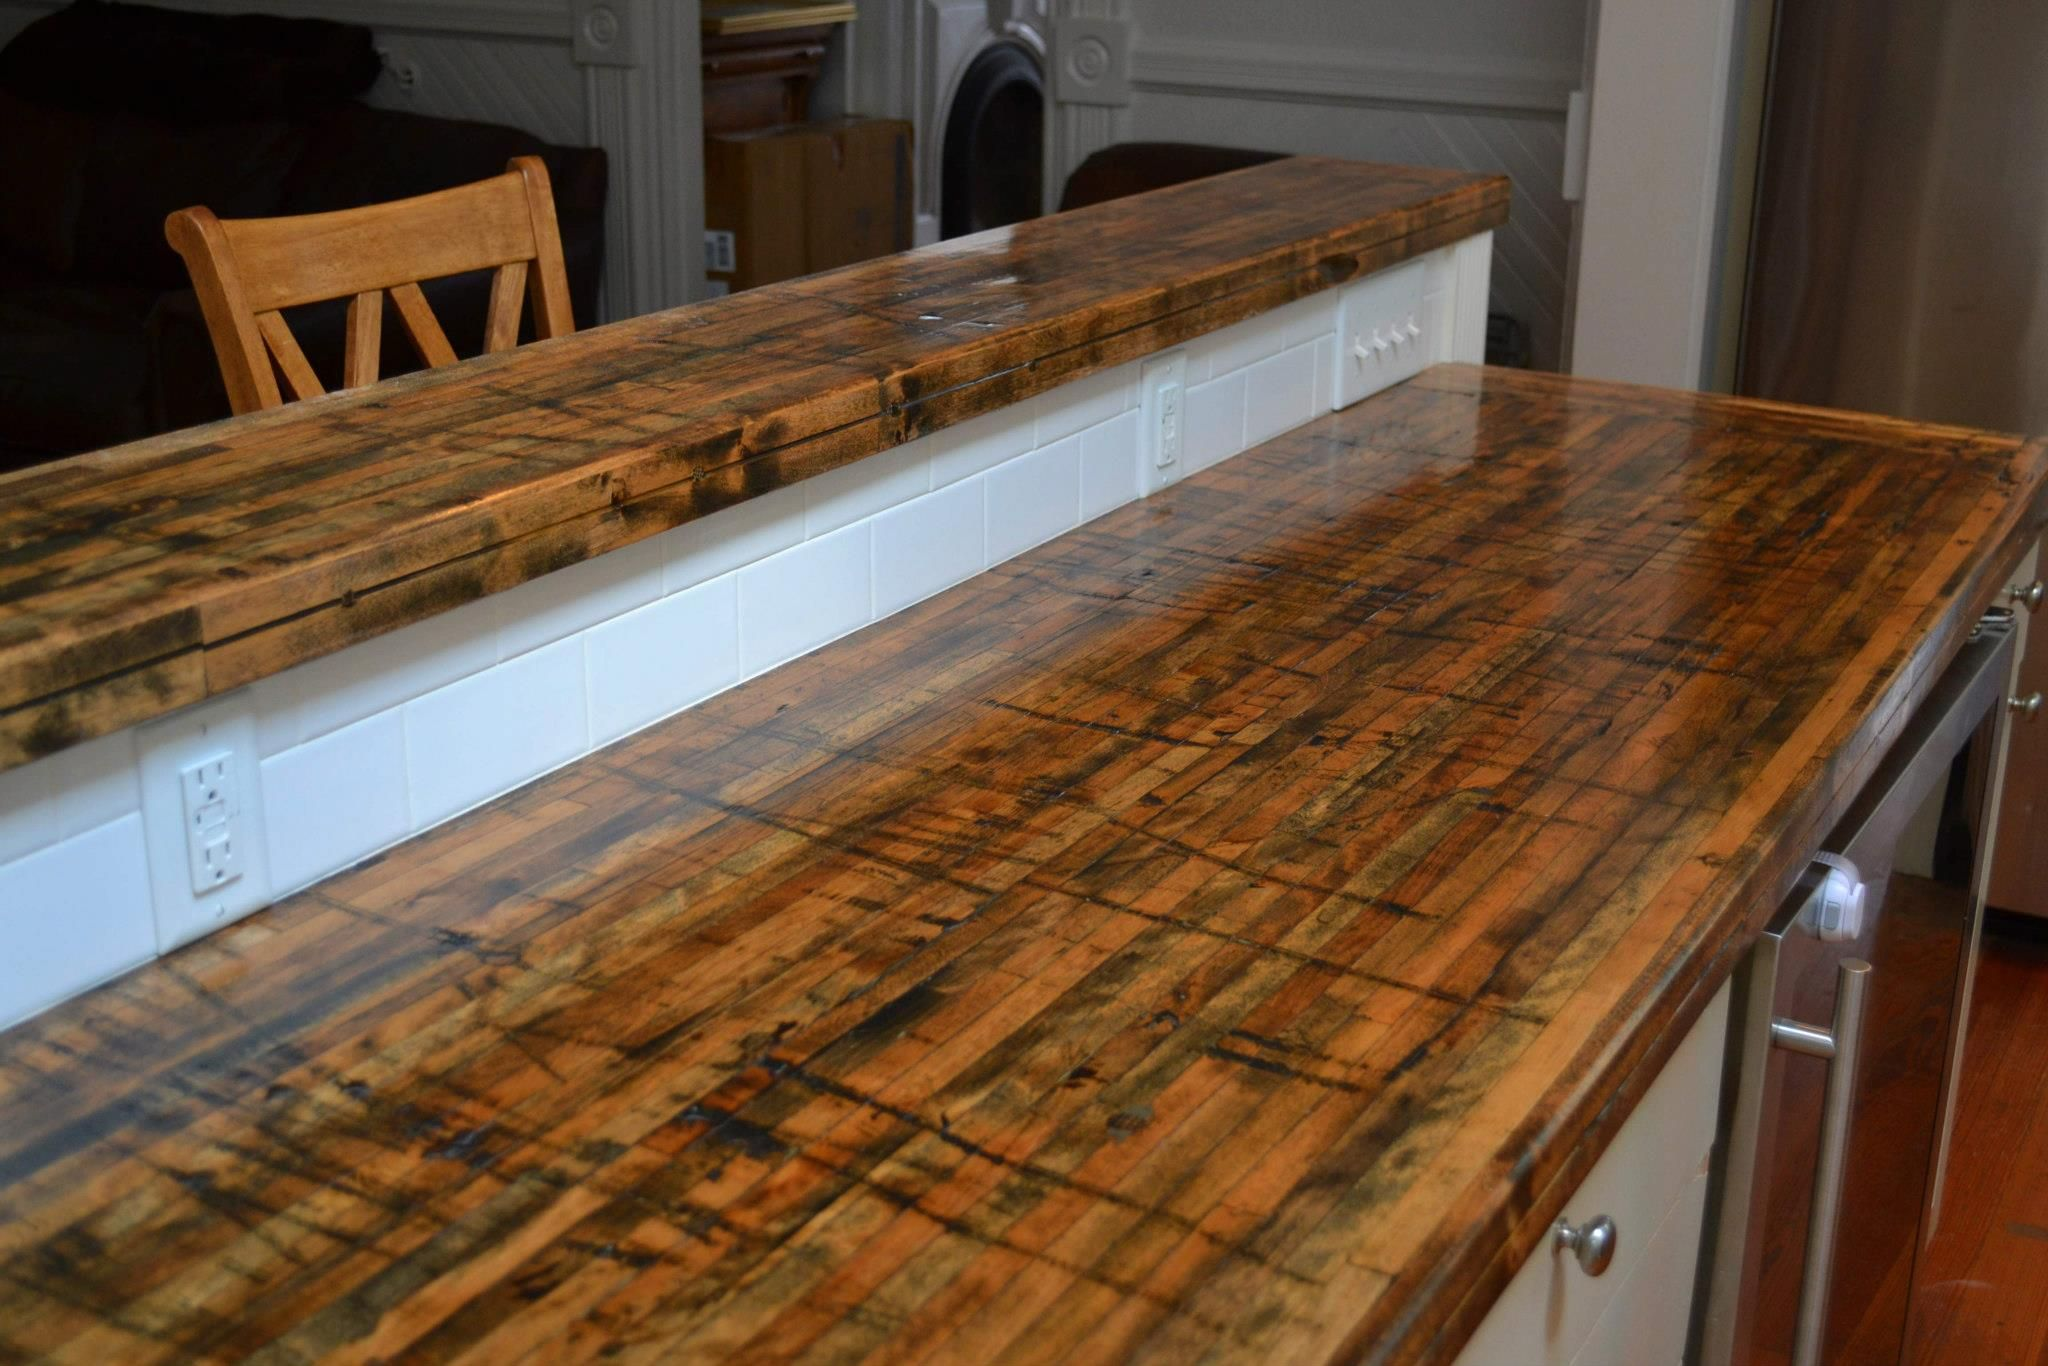 Buy Wood Countertops Beautiful New Countertops Made From The Floors Of Railroad